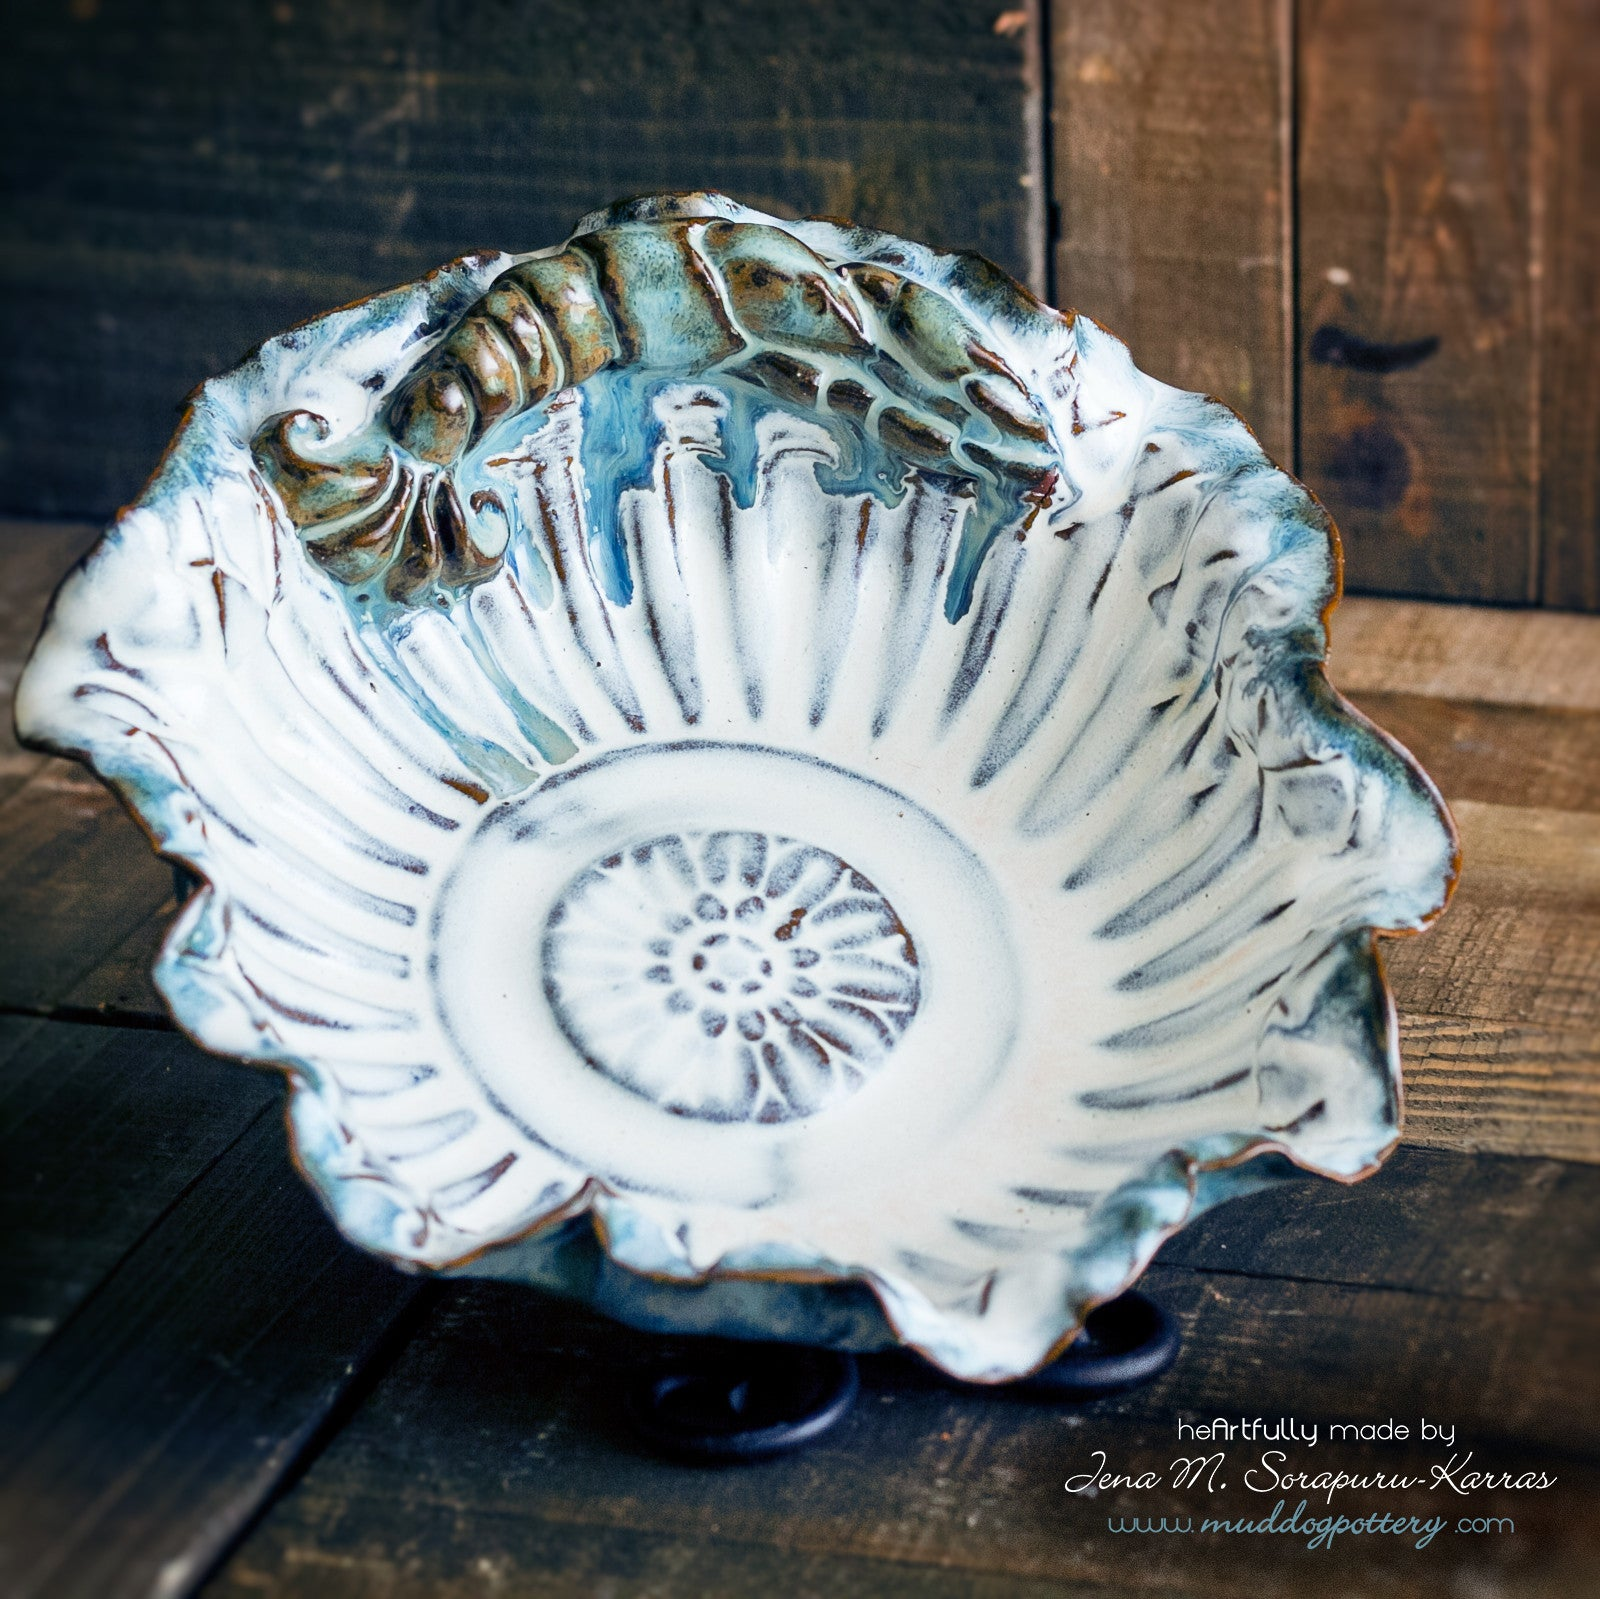 Blue Crawfish (Krevis Blé) Small Serving Bowl